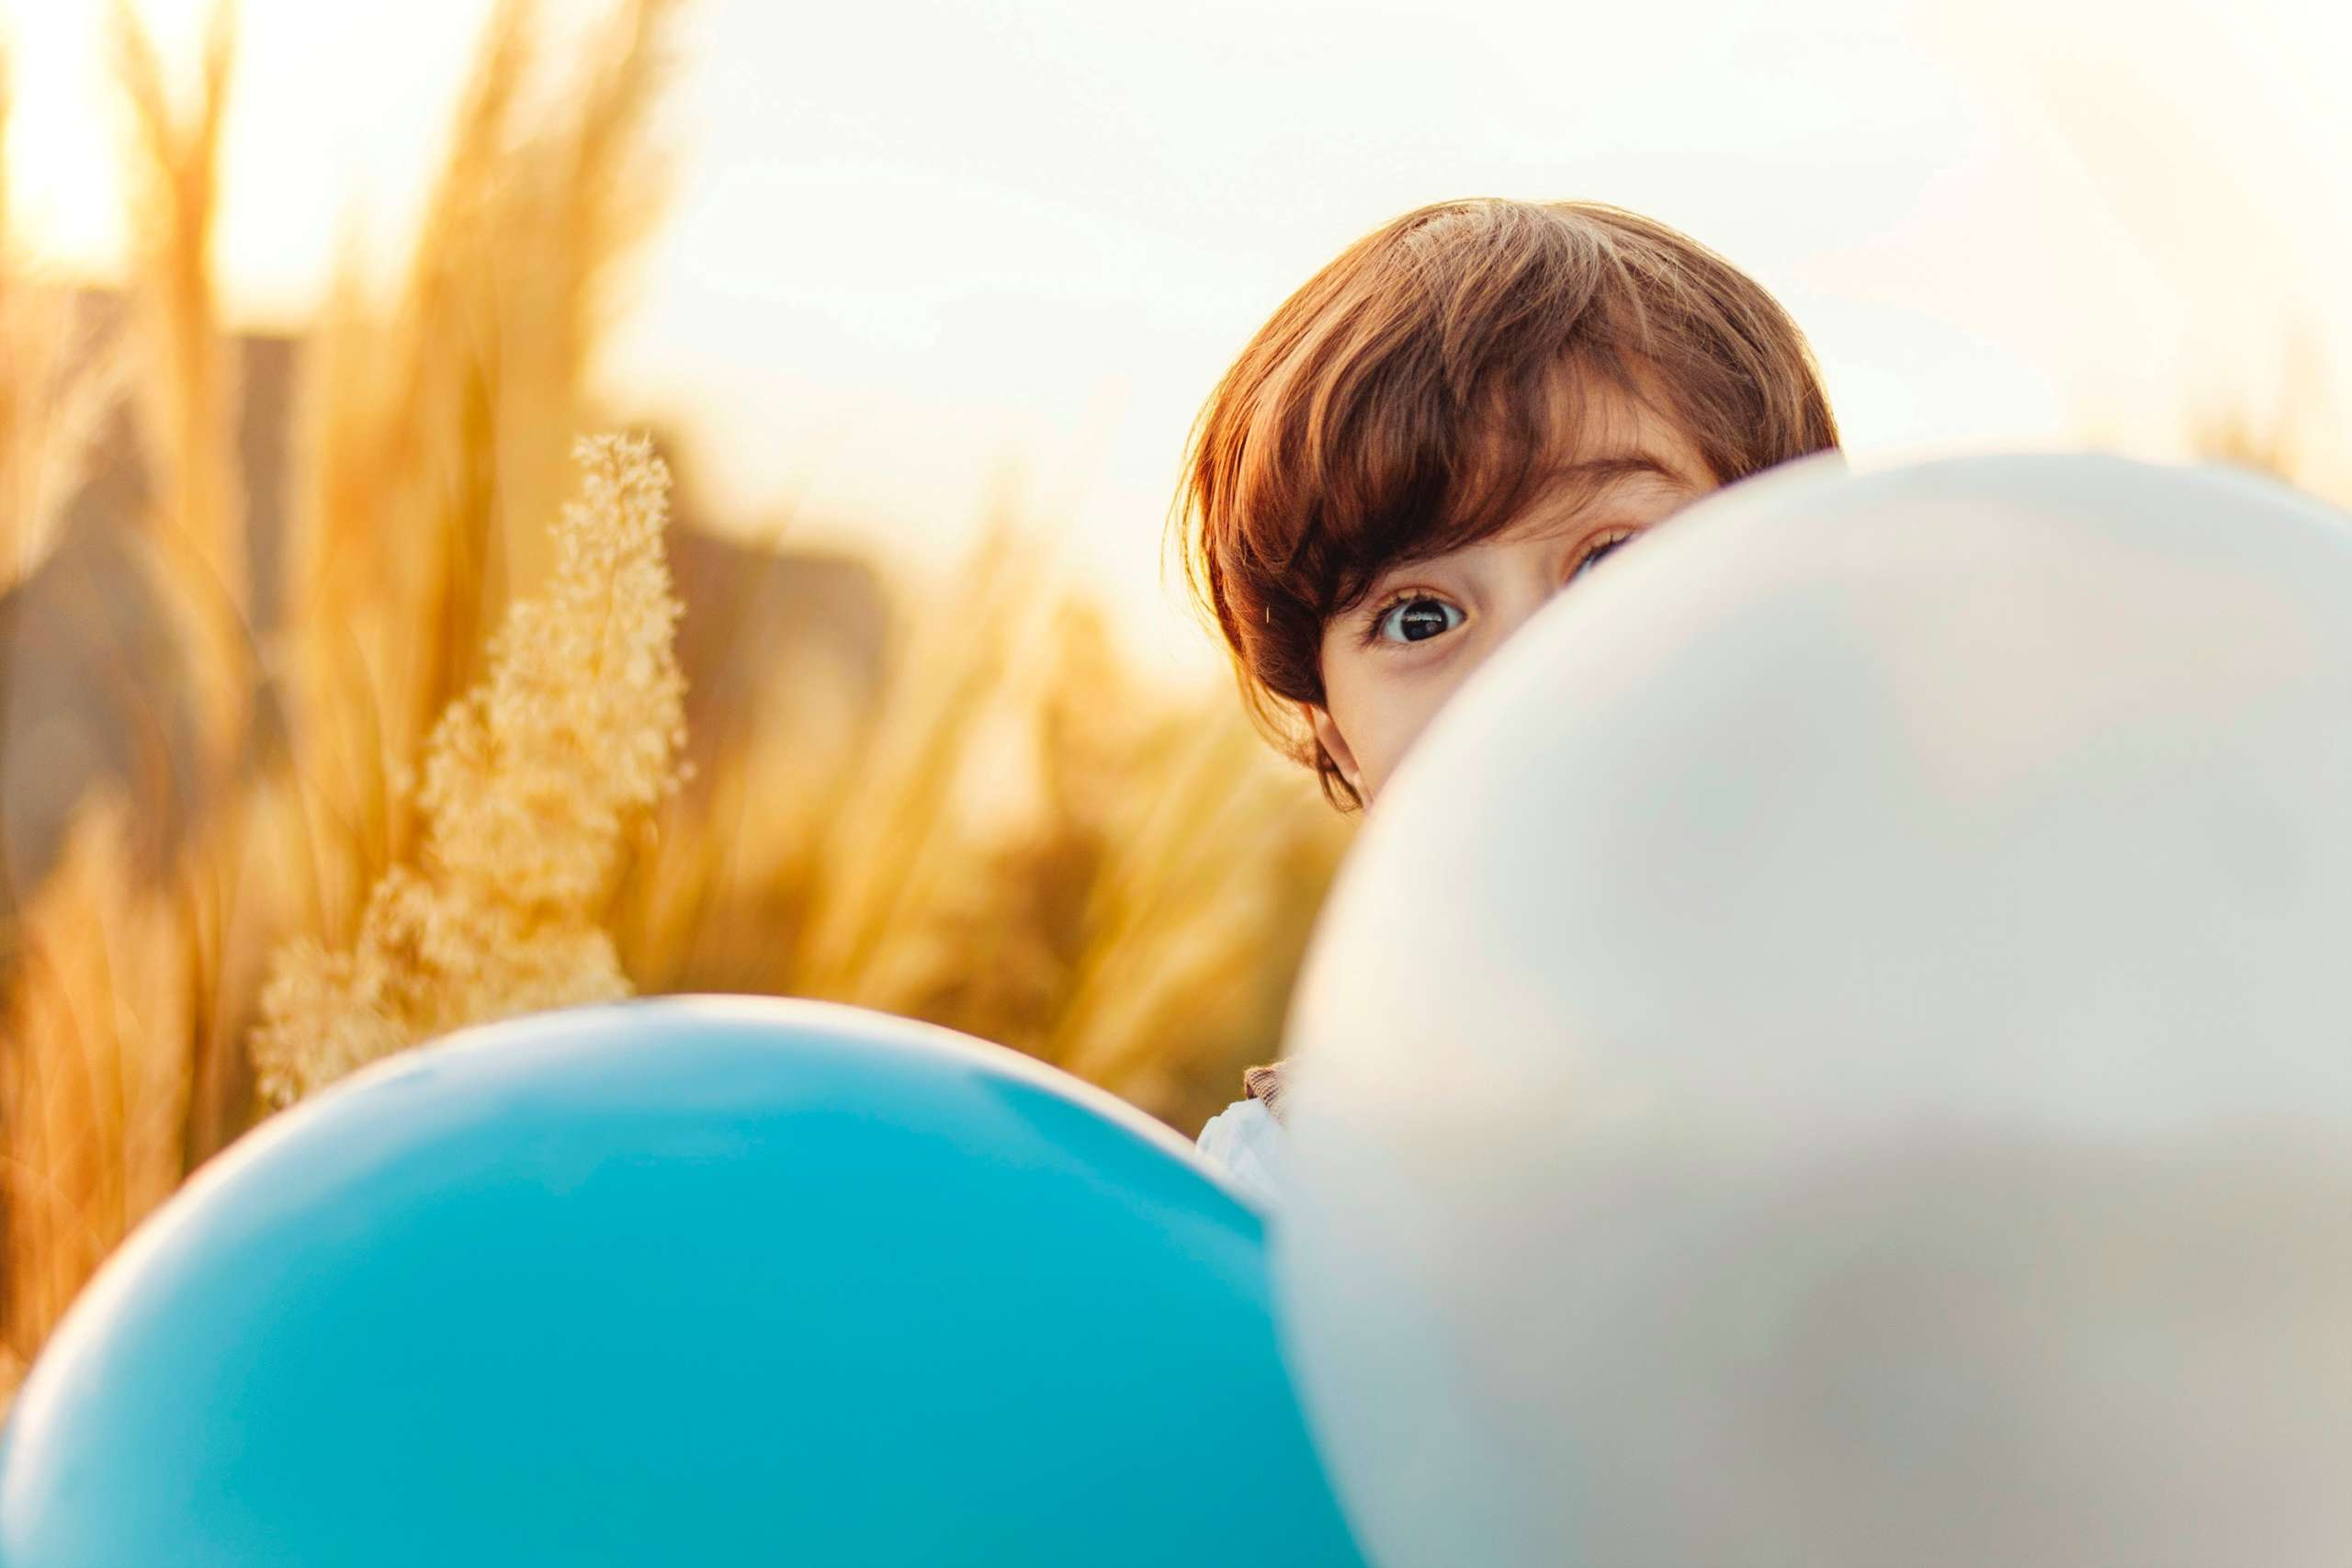 a boy looking from behind balloons